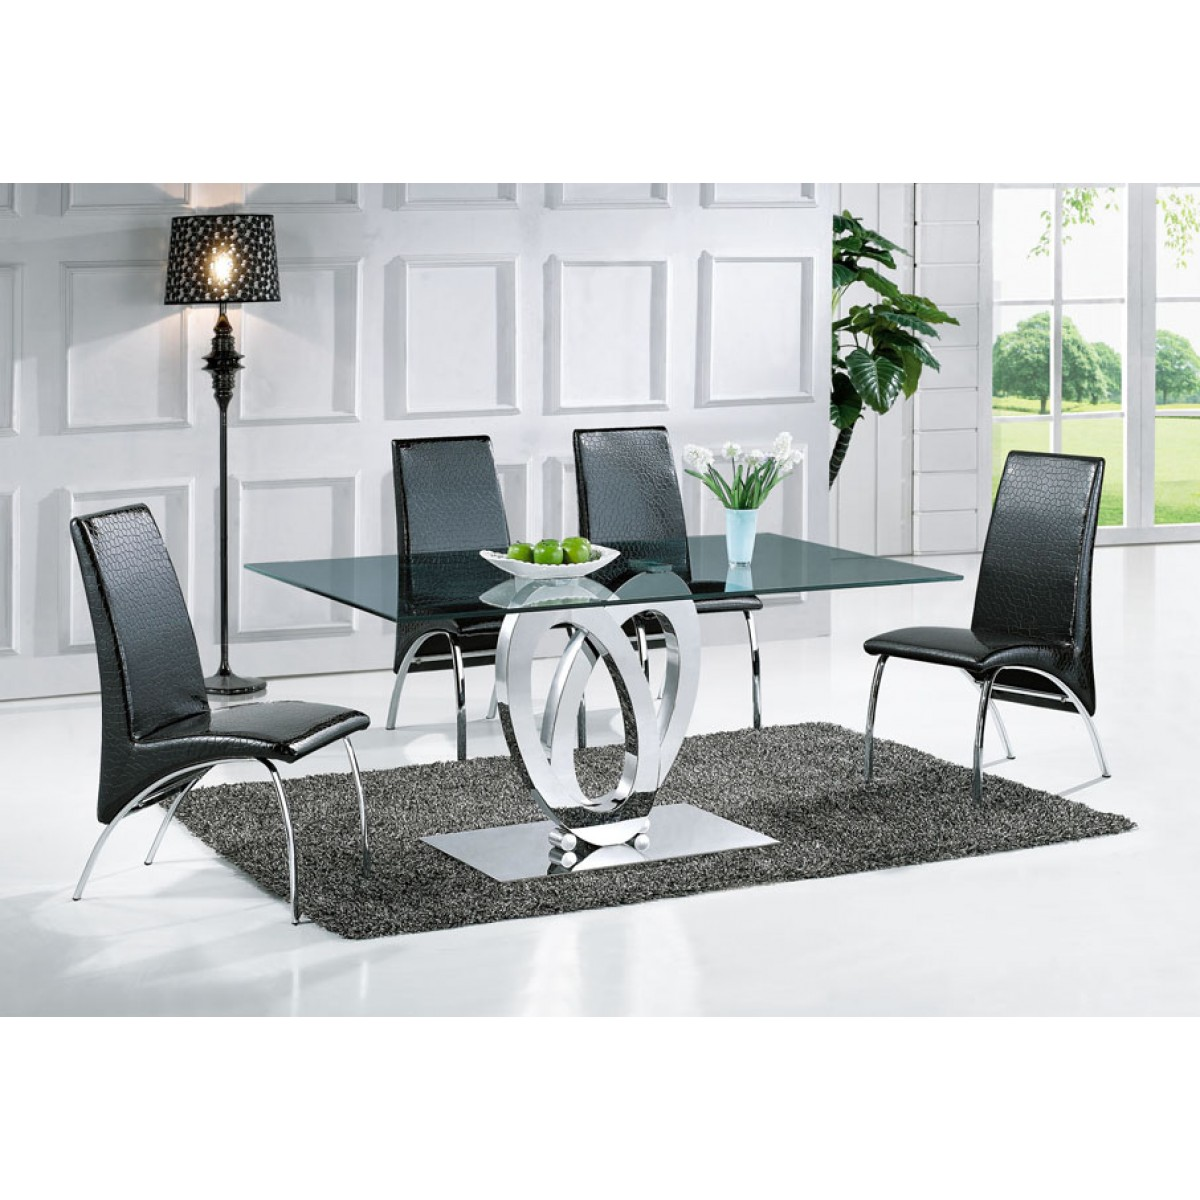 Table manger design ellipse taille au choix tables for Table en verre salle a manger